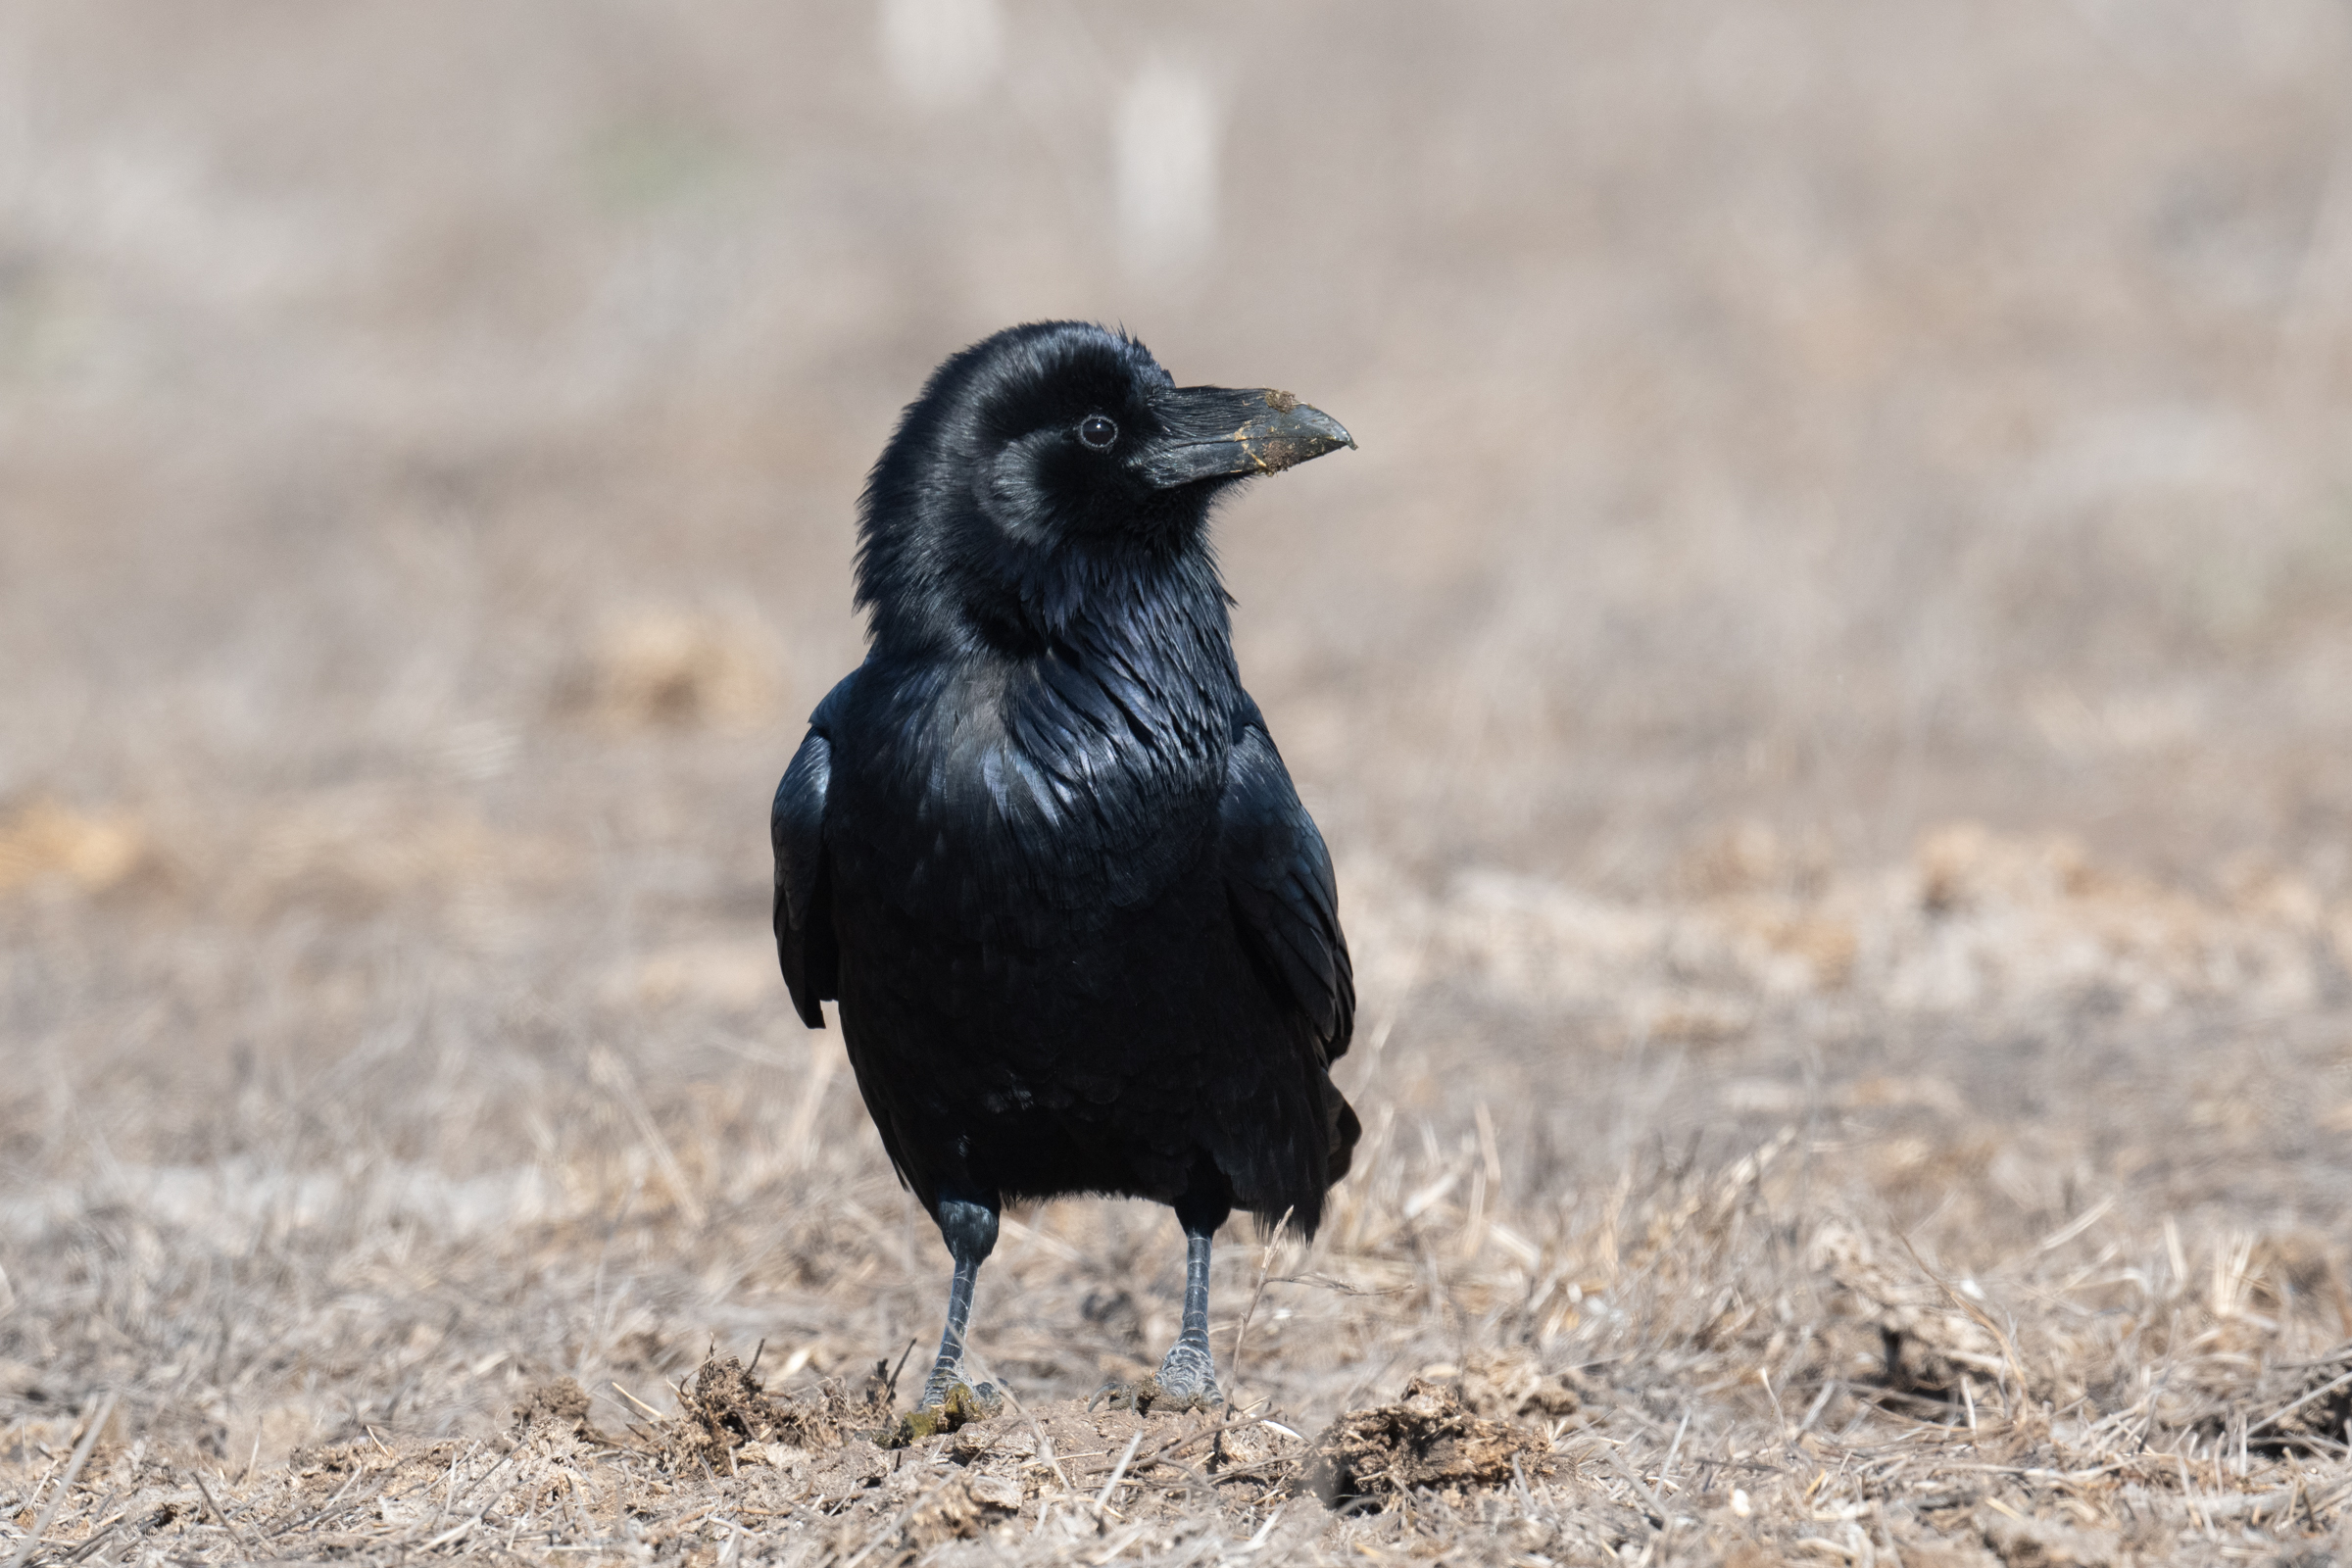 Ravens are attracted to ranches and dairies in the Park, both by the manure and by the carrion that results when ranchers plant and harvest fields for silage to feed their cattle.